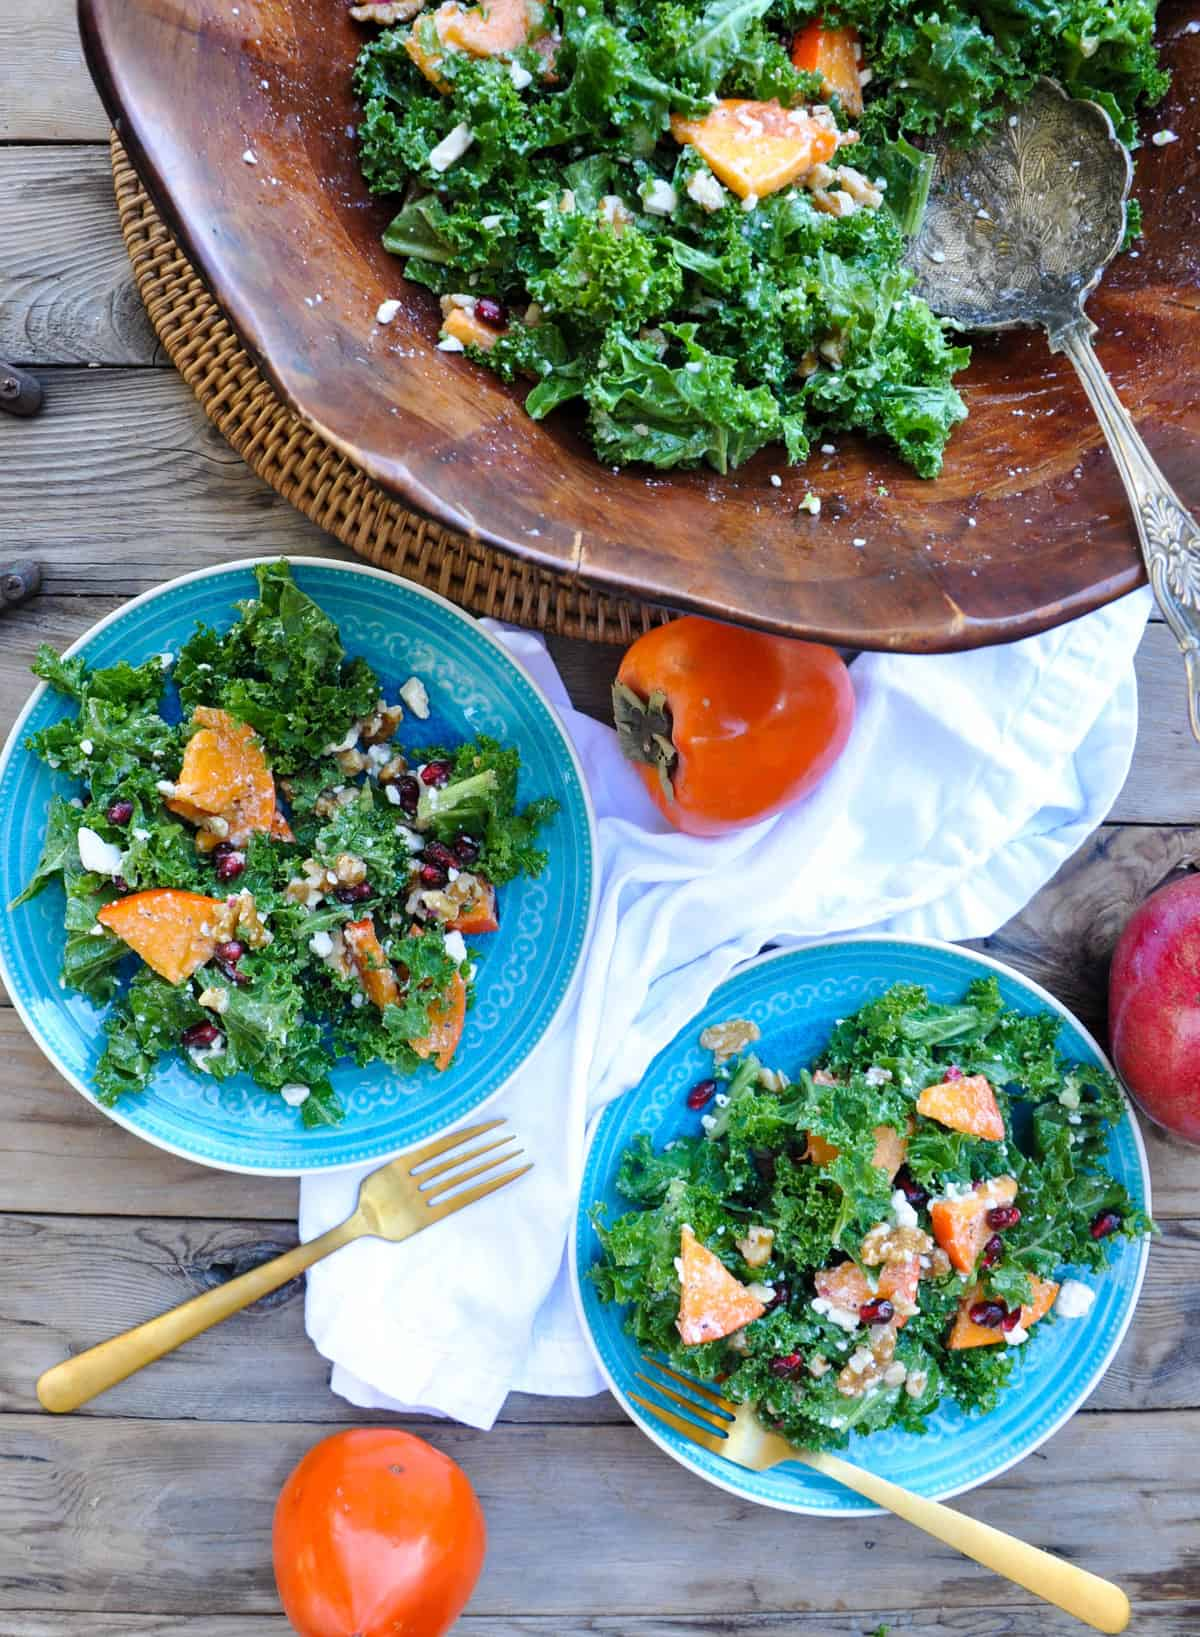 Persimmon Kale Salad with Walnuts and Pomegranate